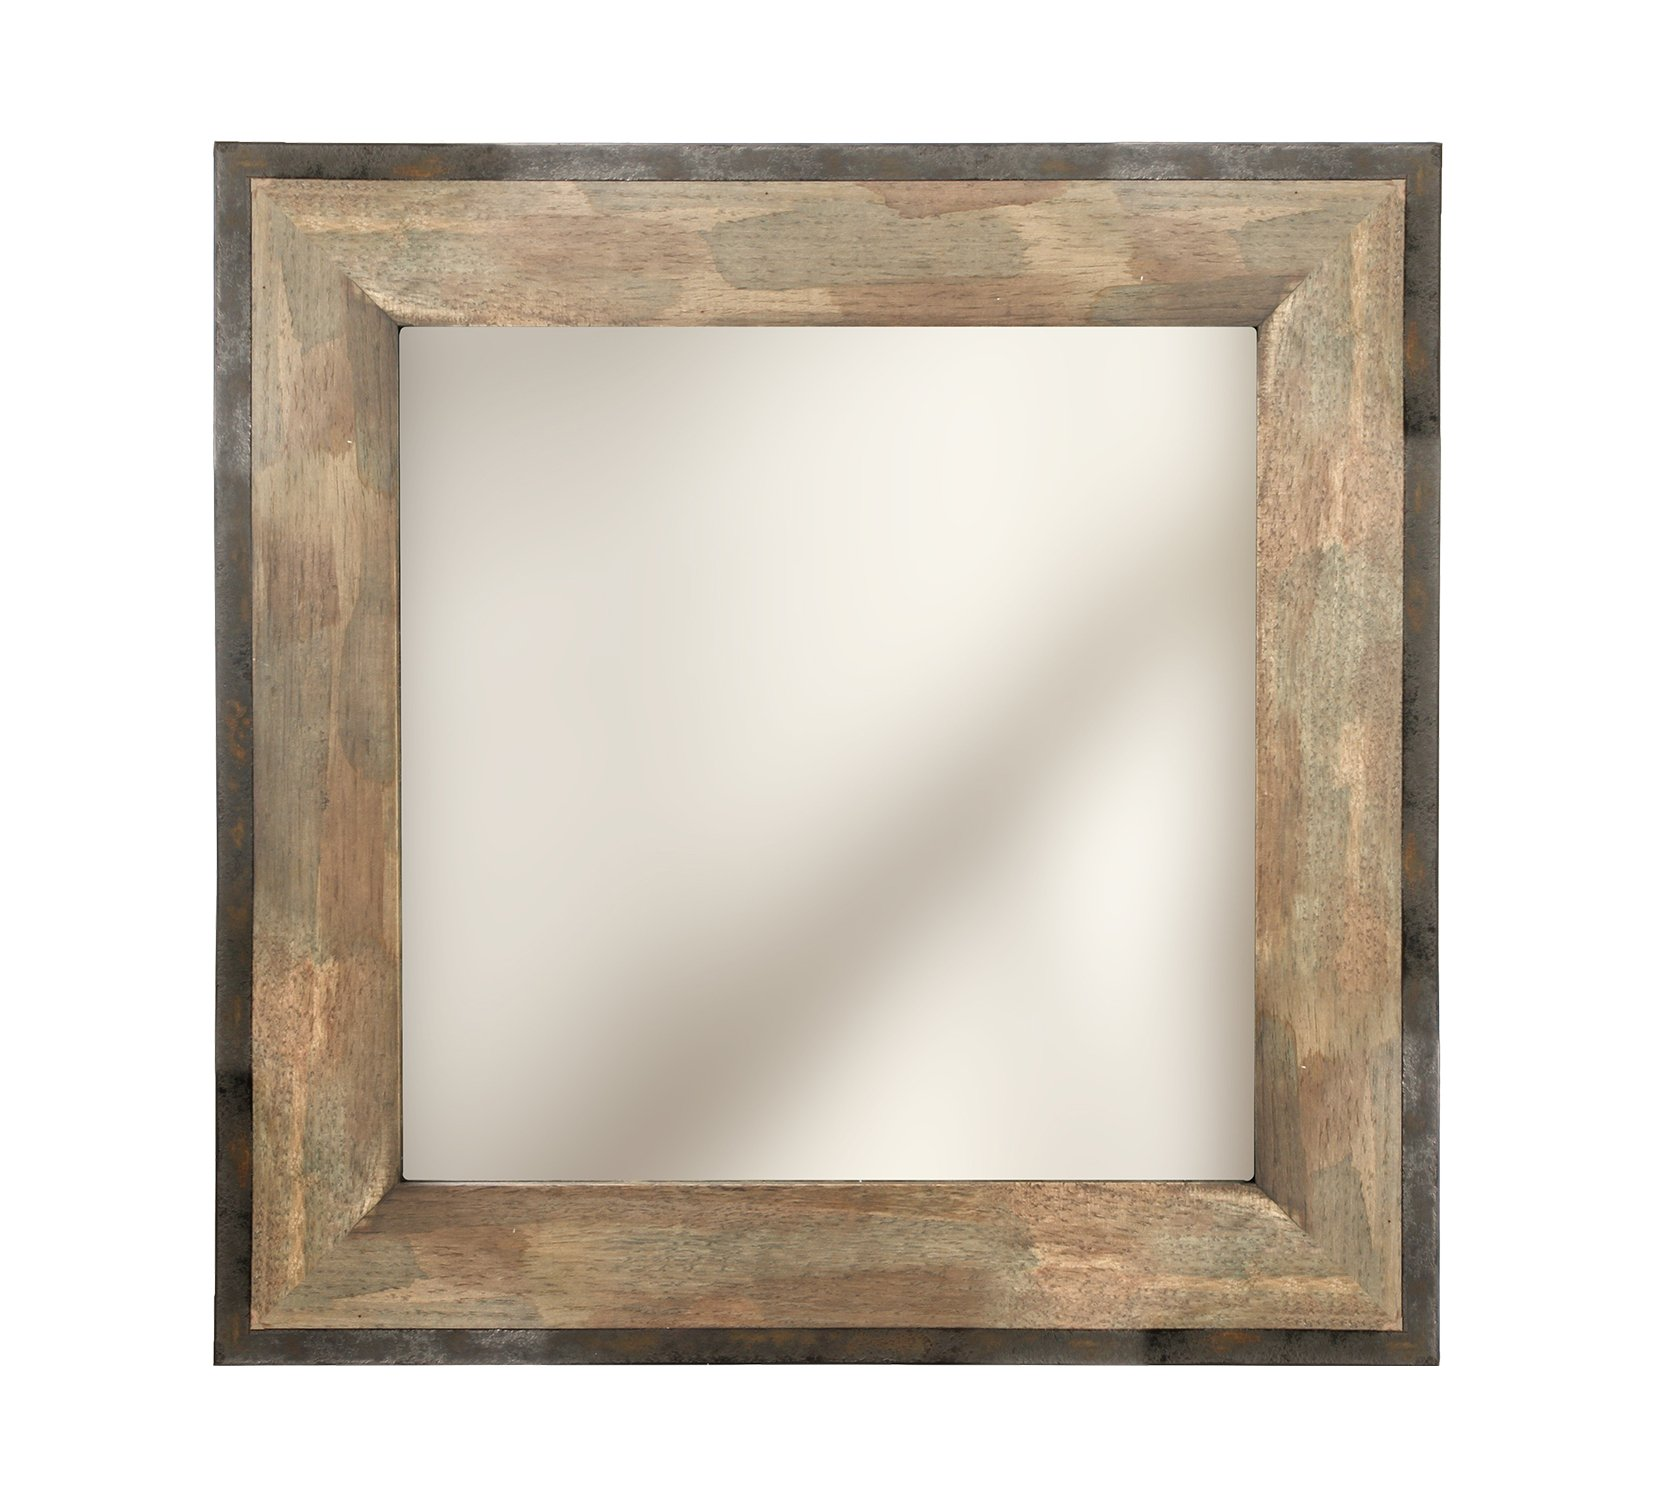 Hosley Wooden & Metal Frame Mirror- 20'' High. Ideal for Weddings, Special Occasions, and for Wall Decor, Home, Spa, Aromatherapy, Reiki. P2